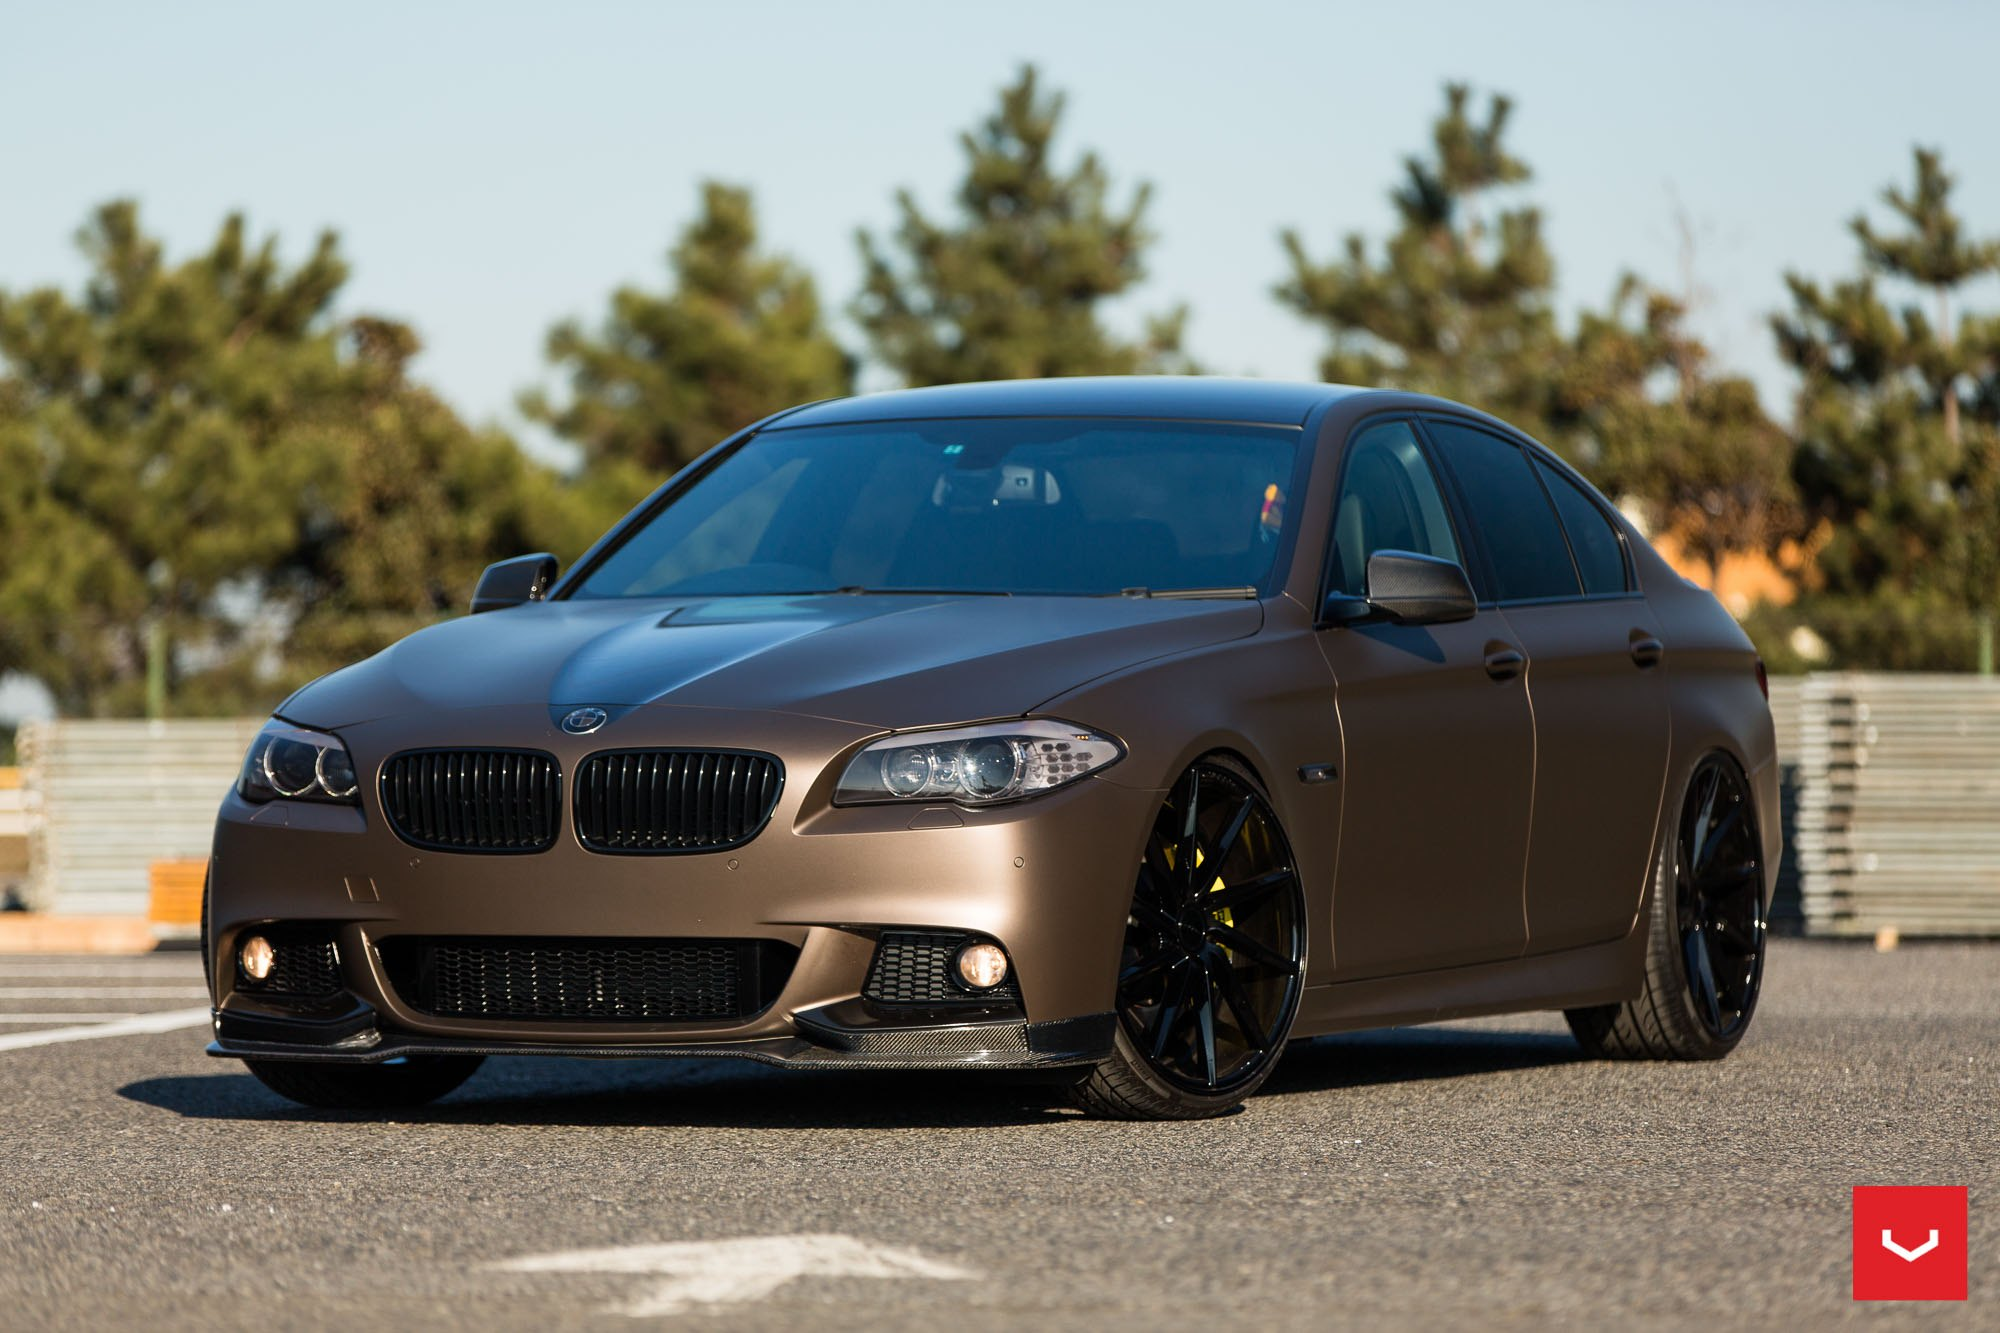 Bronze Wrapped Bmw M5 With Carbon Fiber Bumper Lip By Vossen Carid Com Gallery